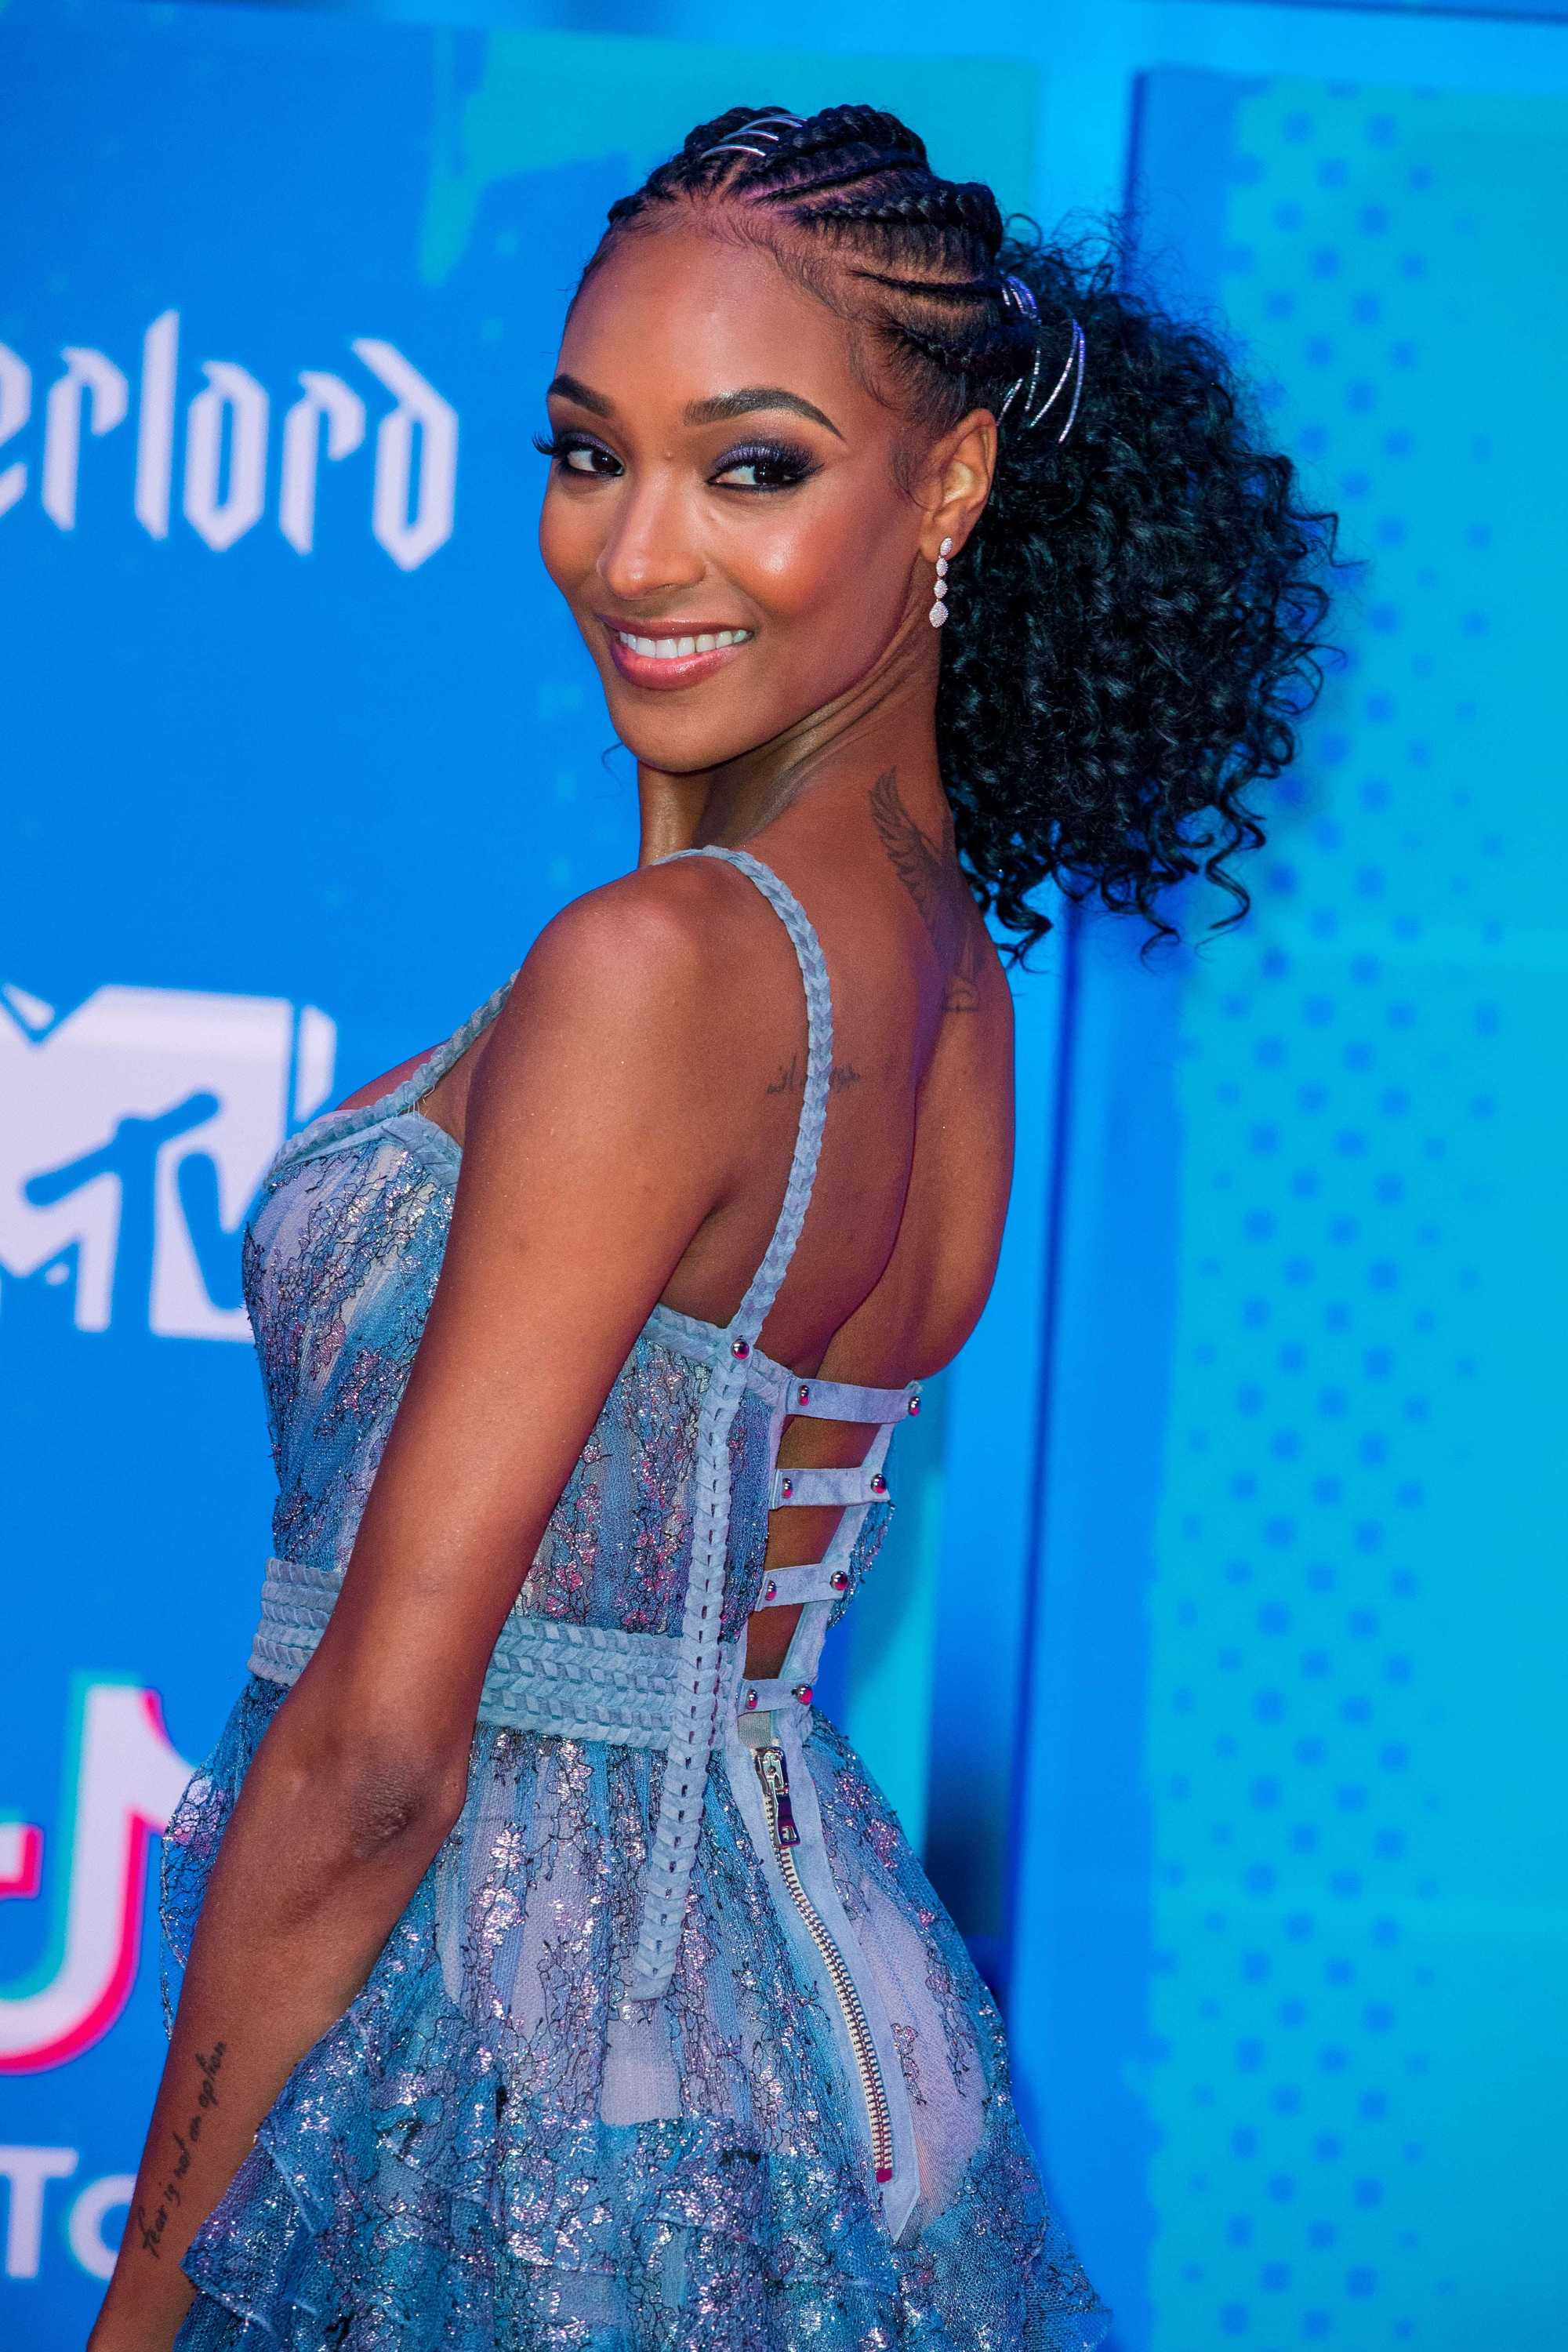 MTV EMAs 2018: Model Jourdan Dunn at the MTV EMAs with her hair in albaso braids and a ponytail